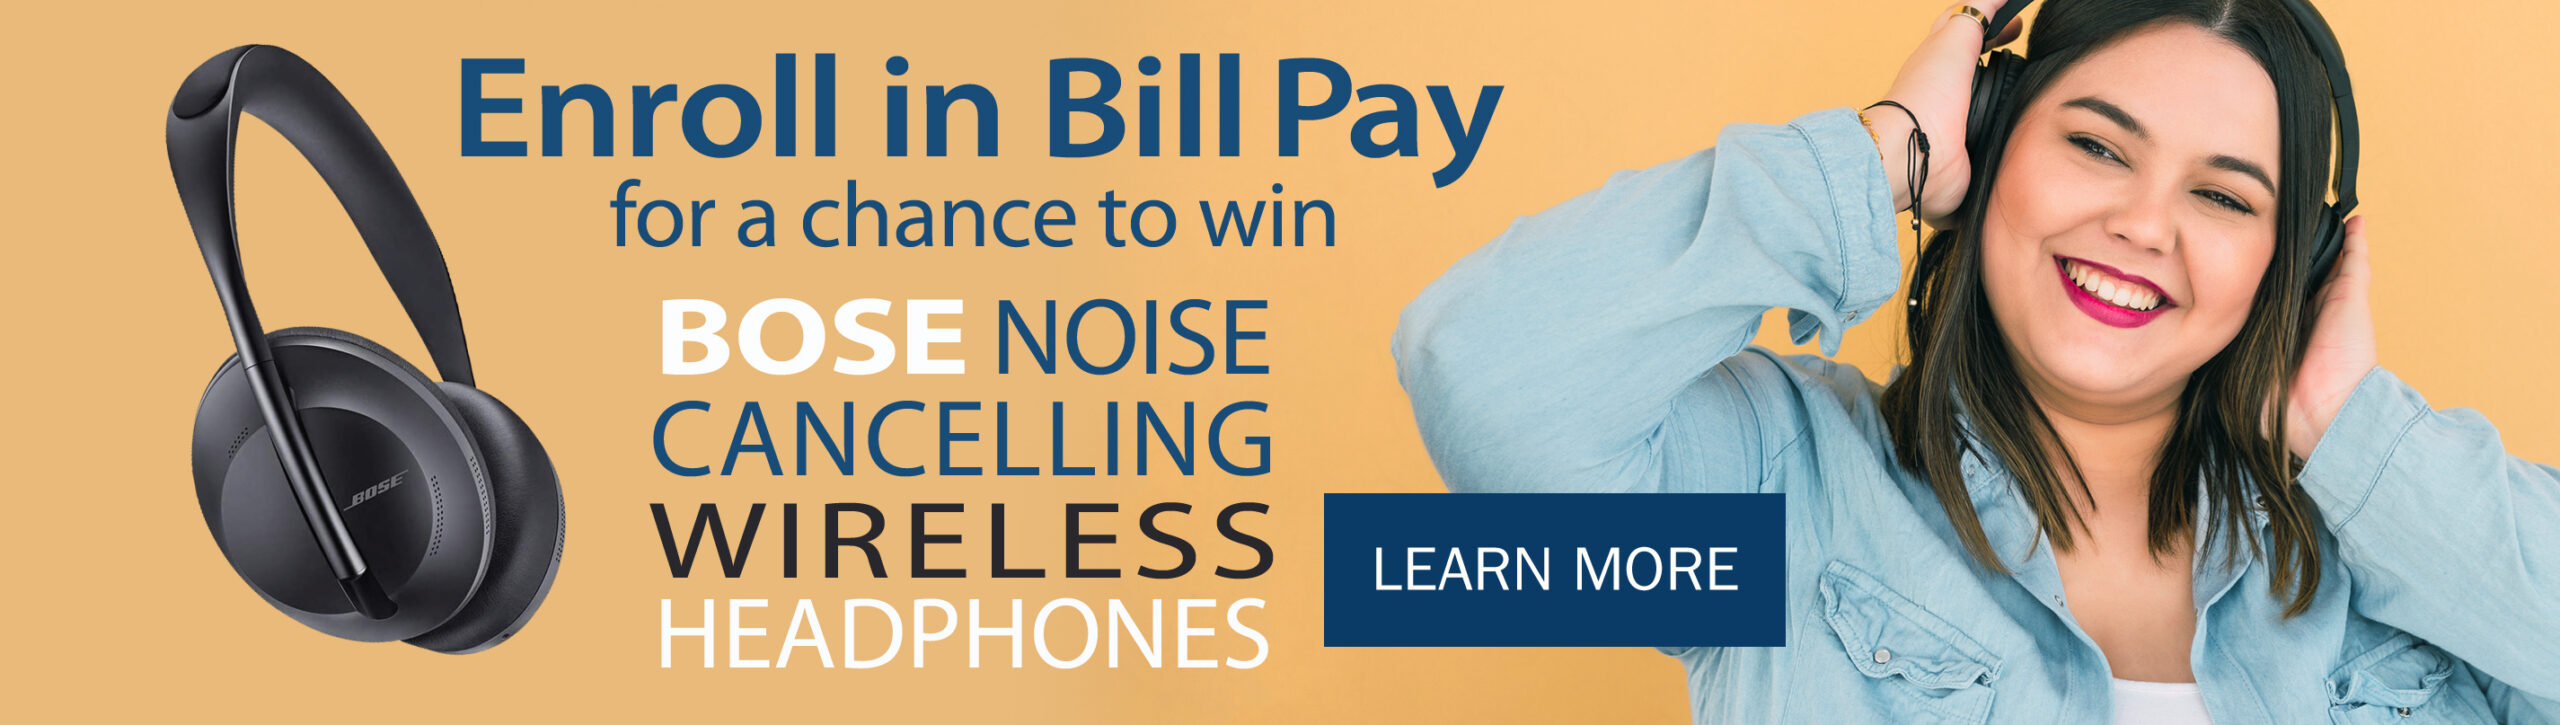 Enroll in Bill Pay for a chance to win... Bose Noise Cancelling Wireless Headphones